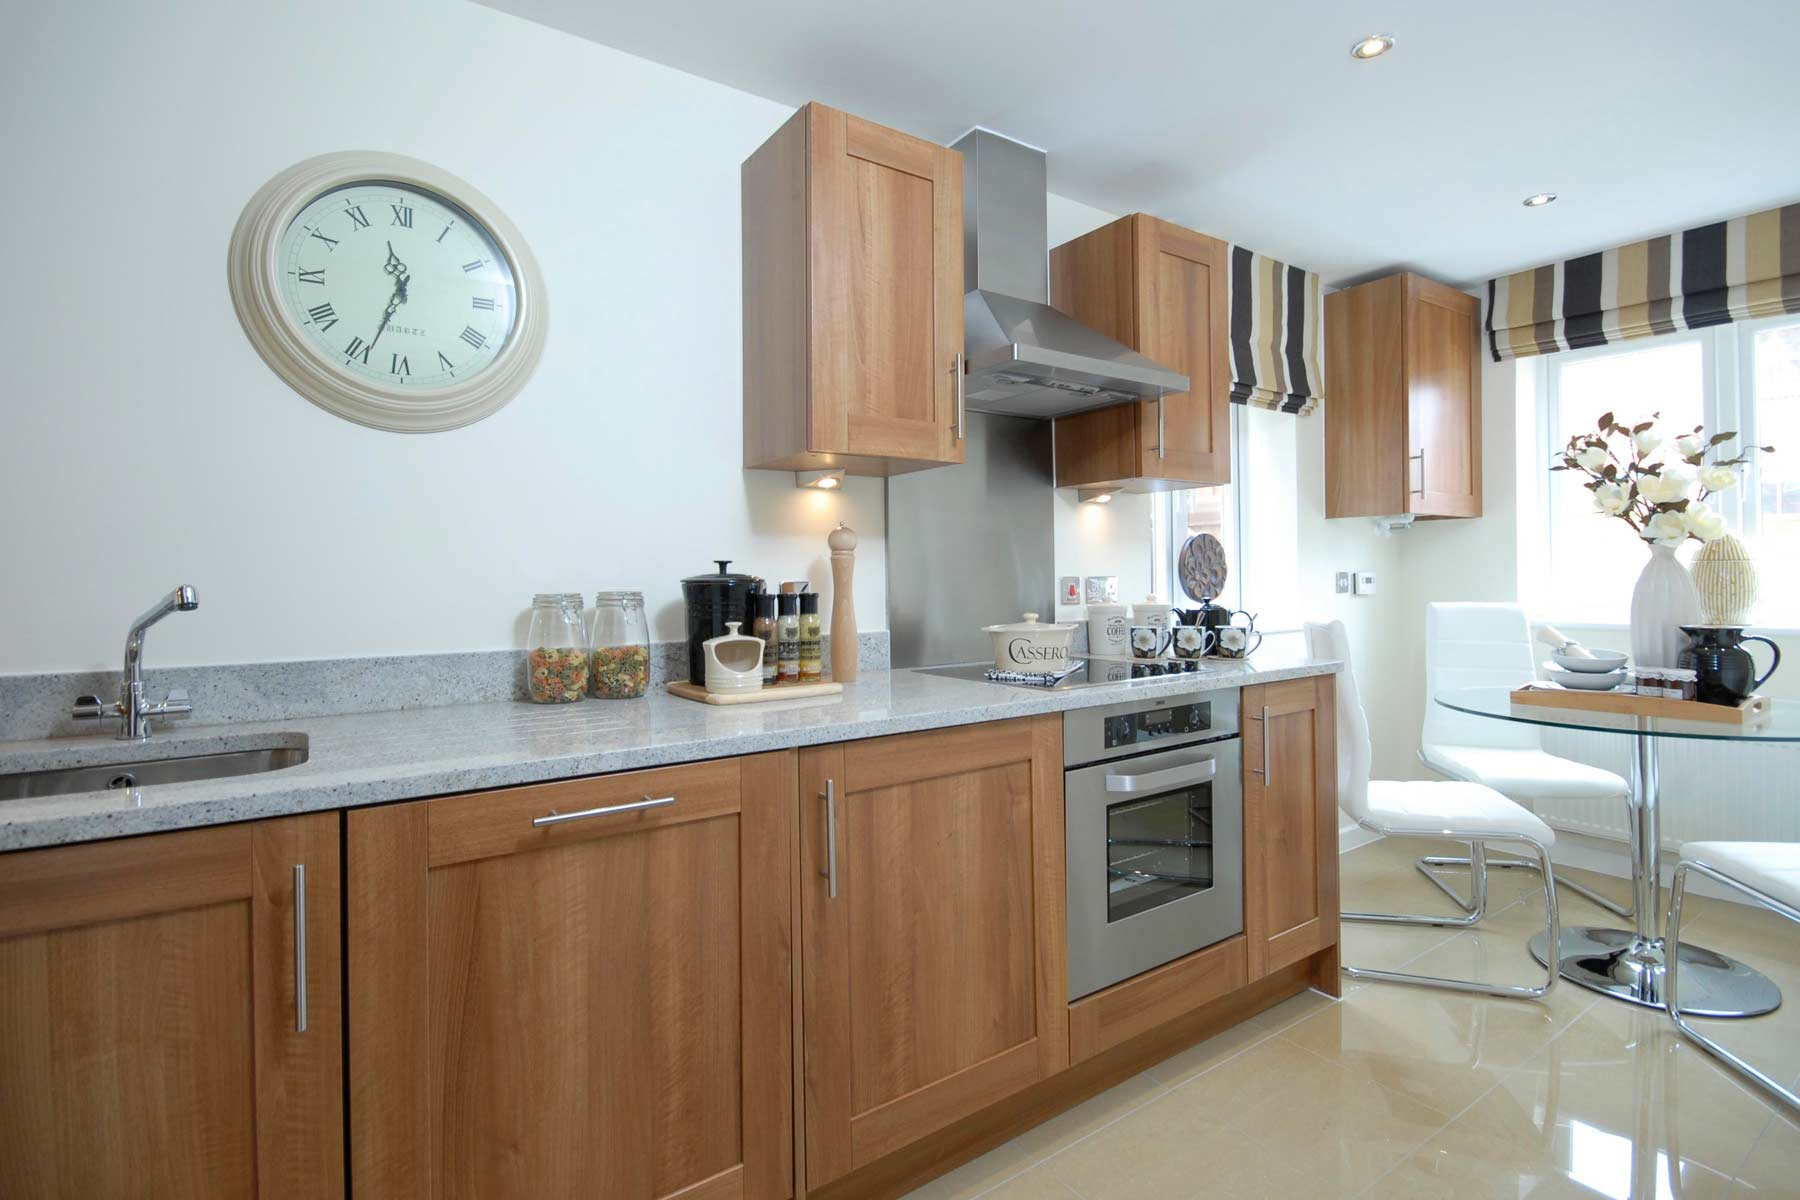 A typical Taylor Wimpey kitchen breakfast room